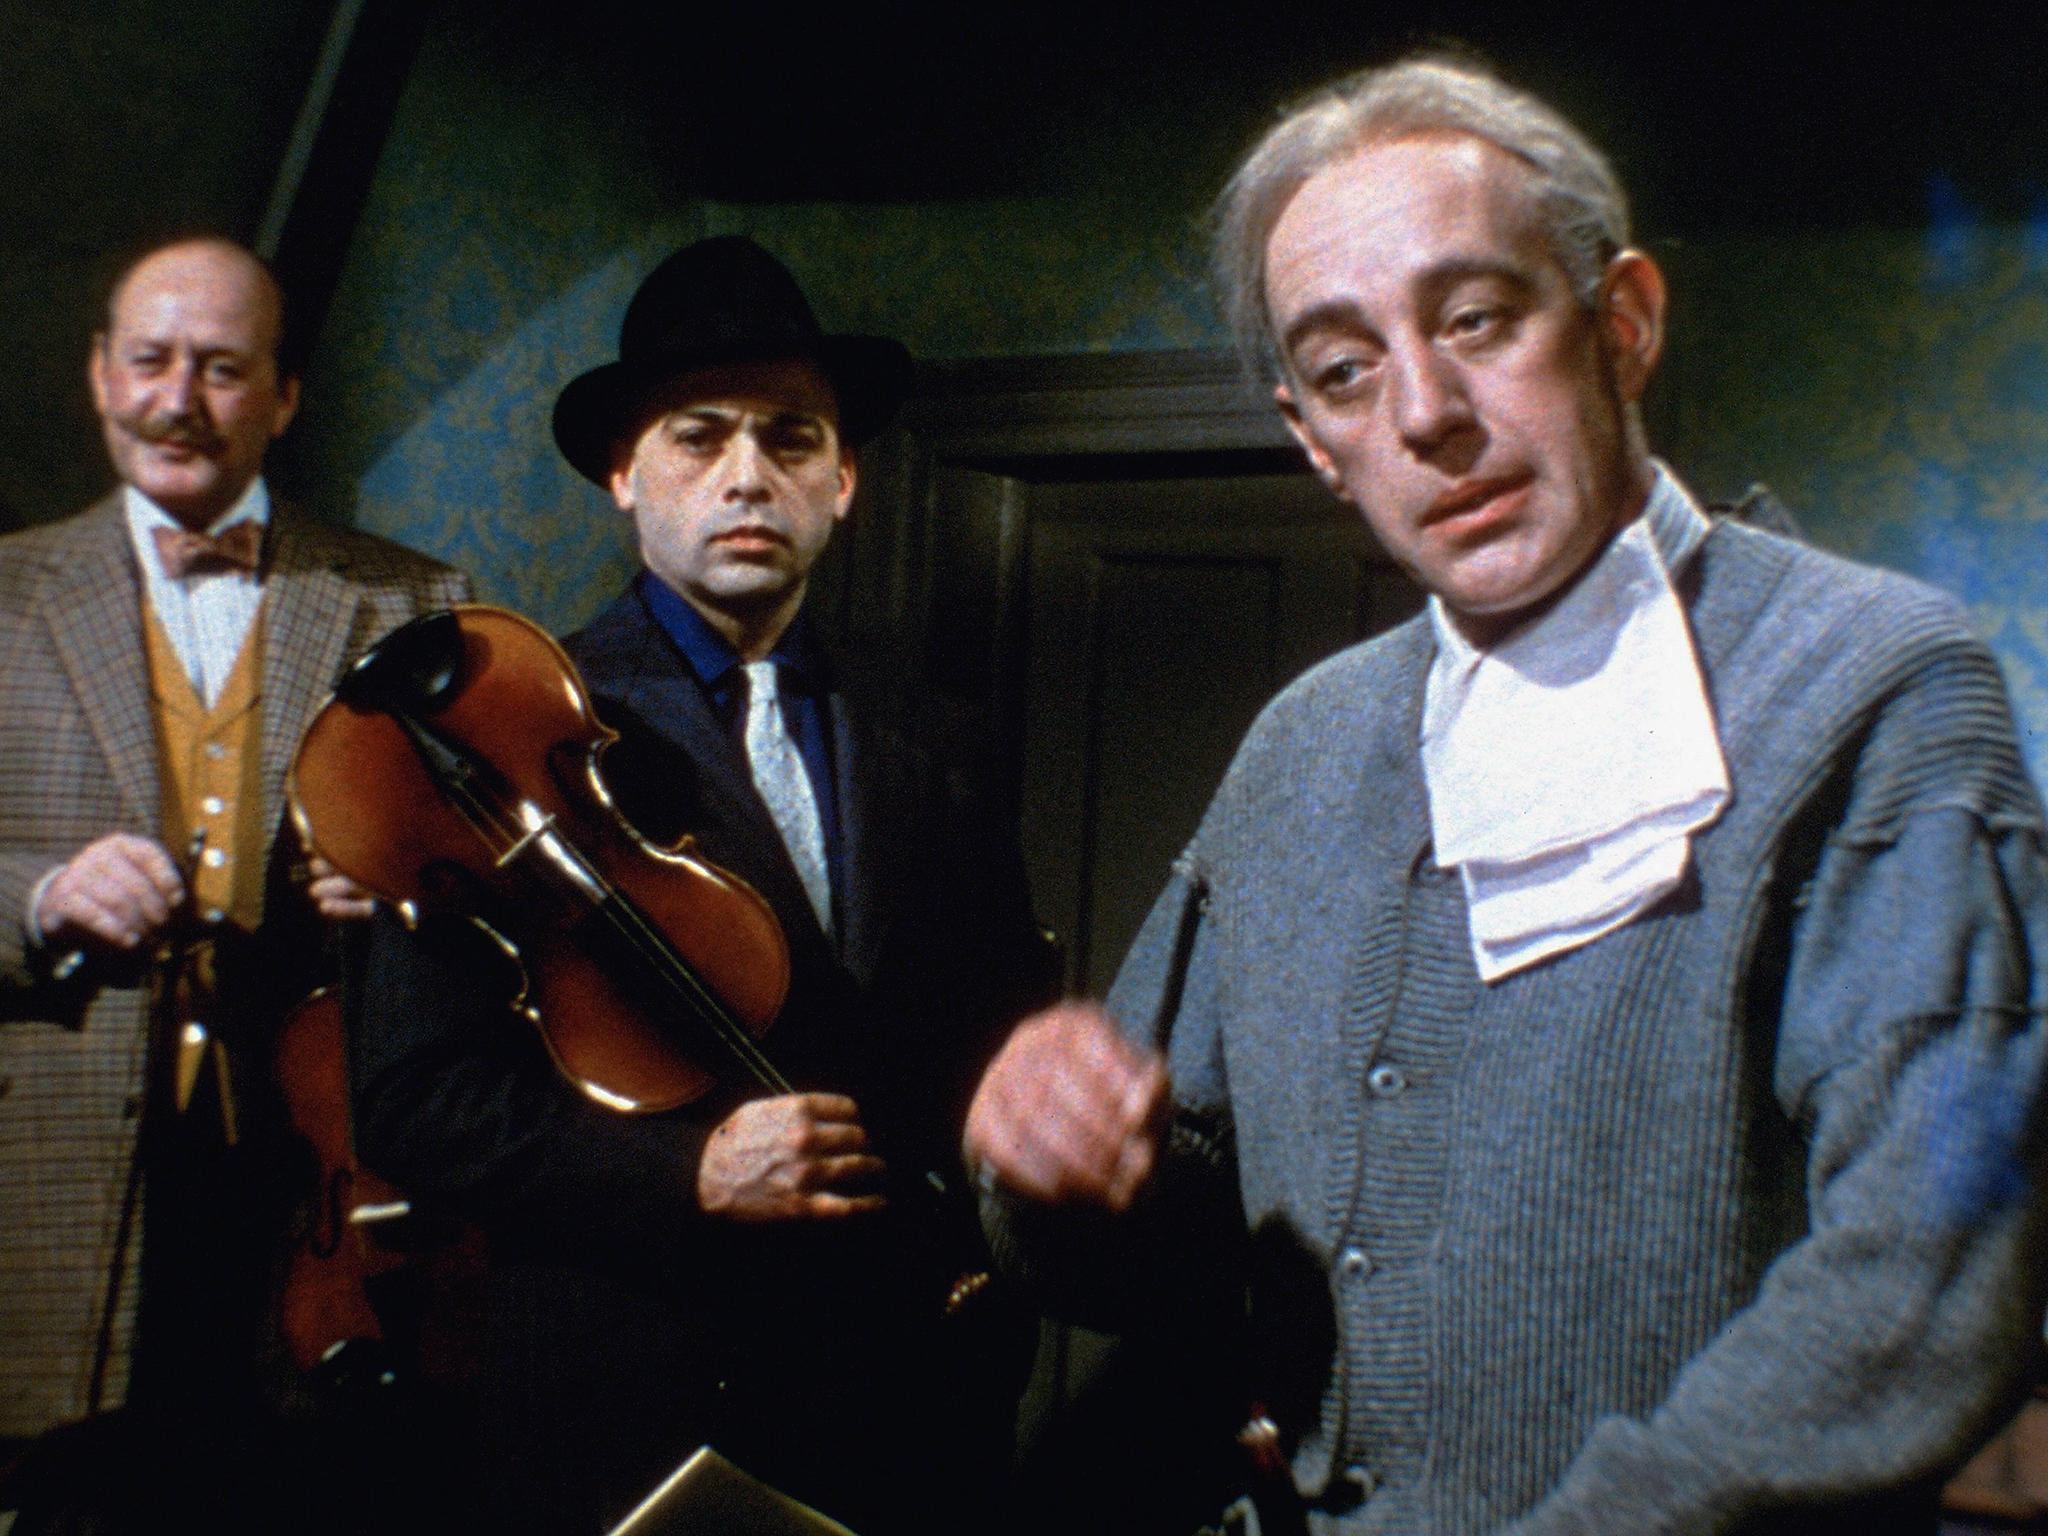 17. The Ladykillers